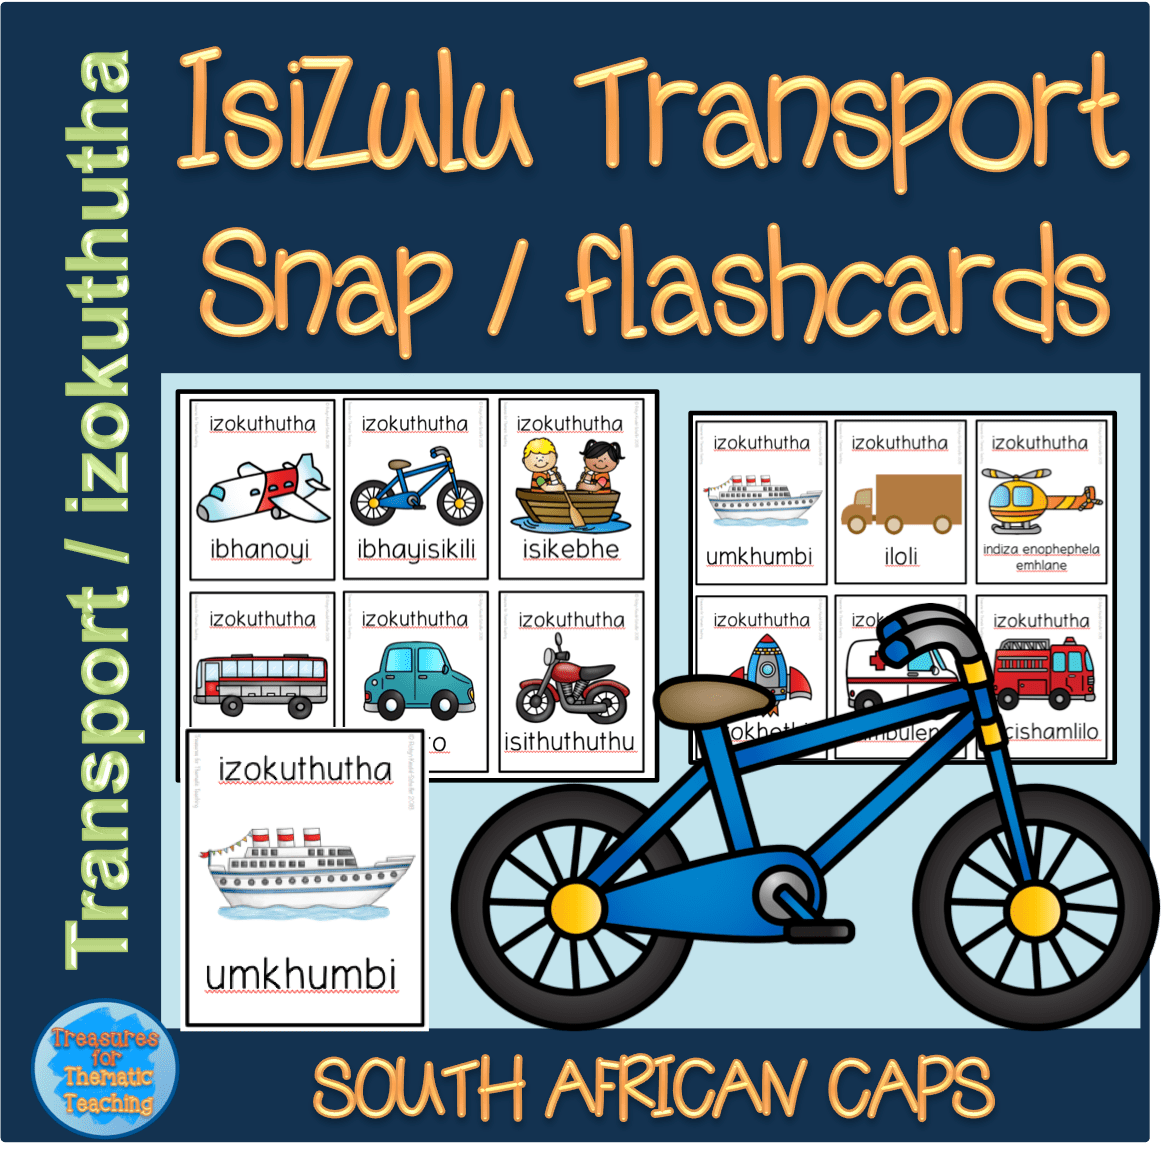 Isizulu Transport Izokuthutha Snap Flashcards Teacha